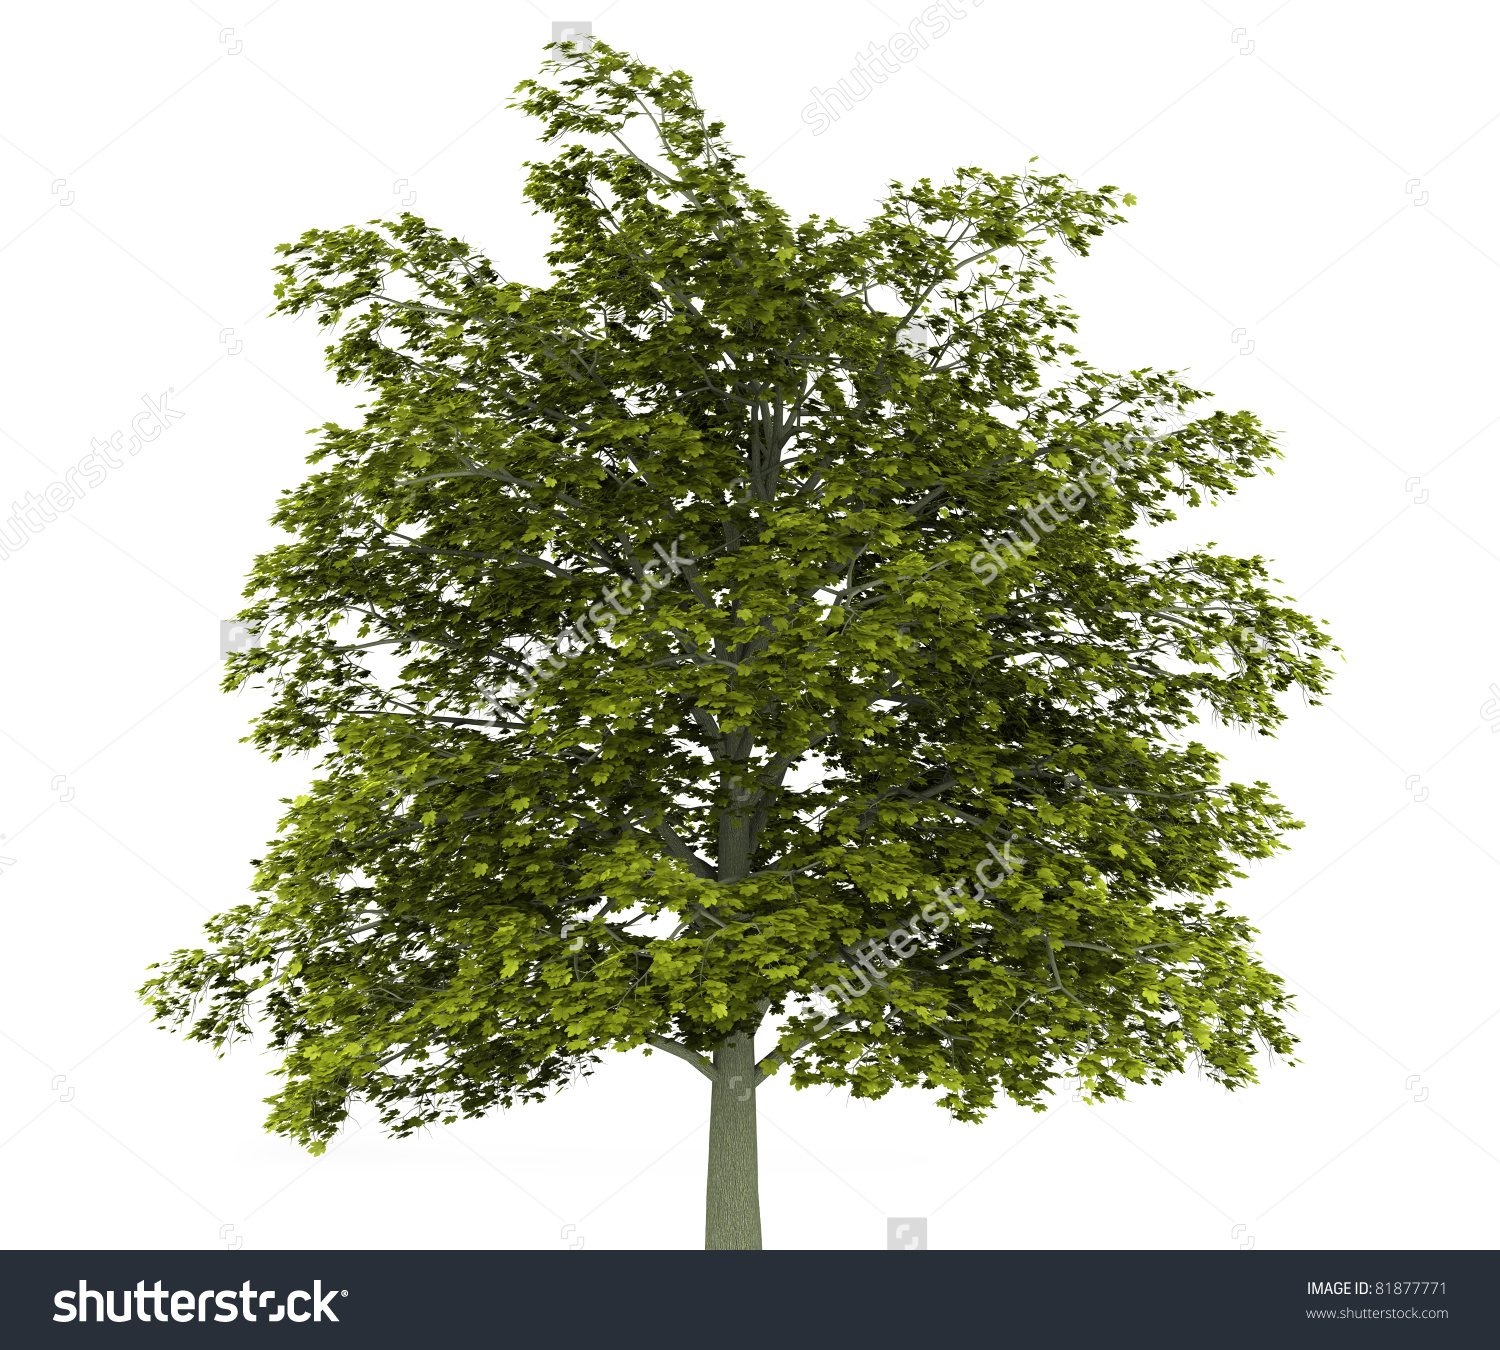 Norway maple clipart #11